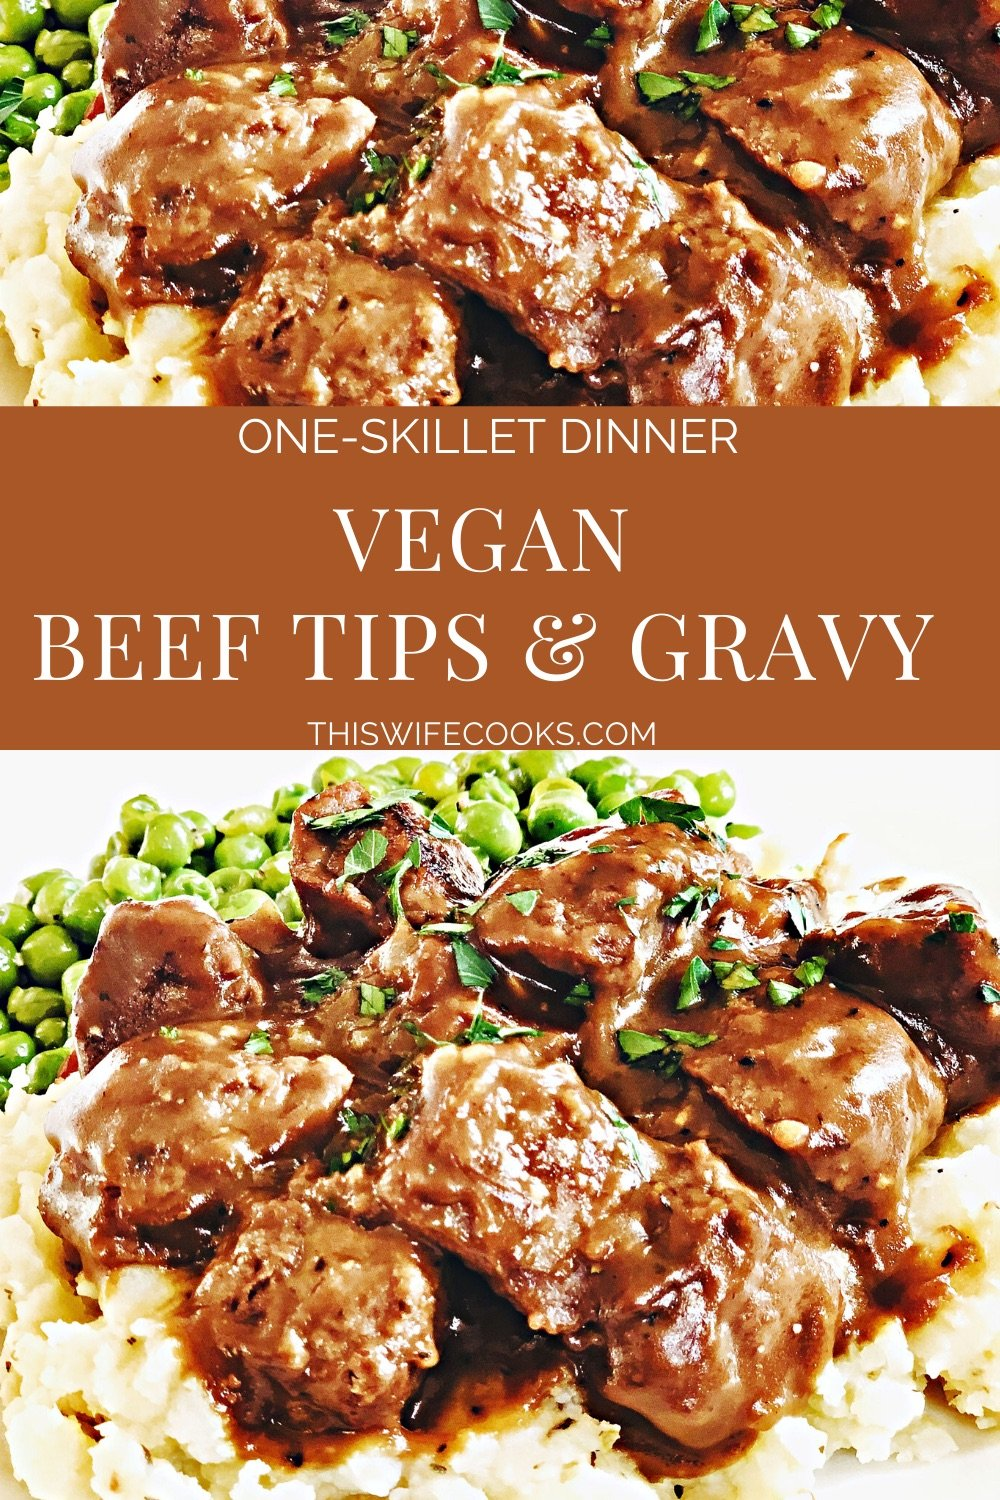 Vegan Beef Tips and Gravy - A hearty and delicious plant-based version of the meat and potatoes classic! #veganbeefrecipes #veganbeeftipsandgravy #veganbeeftipsrecipes #plantbasedbeefrecipes #thiswifecooksrecipes #veganquarantinerecipes #gardeinrecipes #easyvegandinnerrecipes via @thiswifecooks